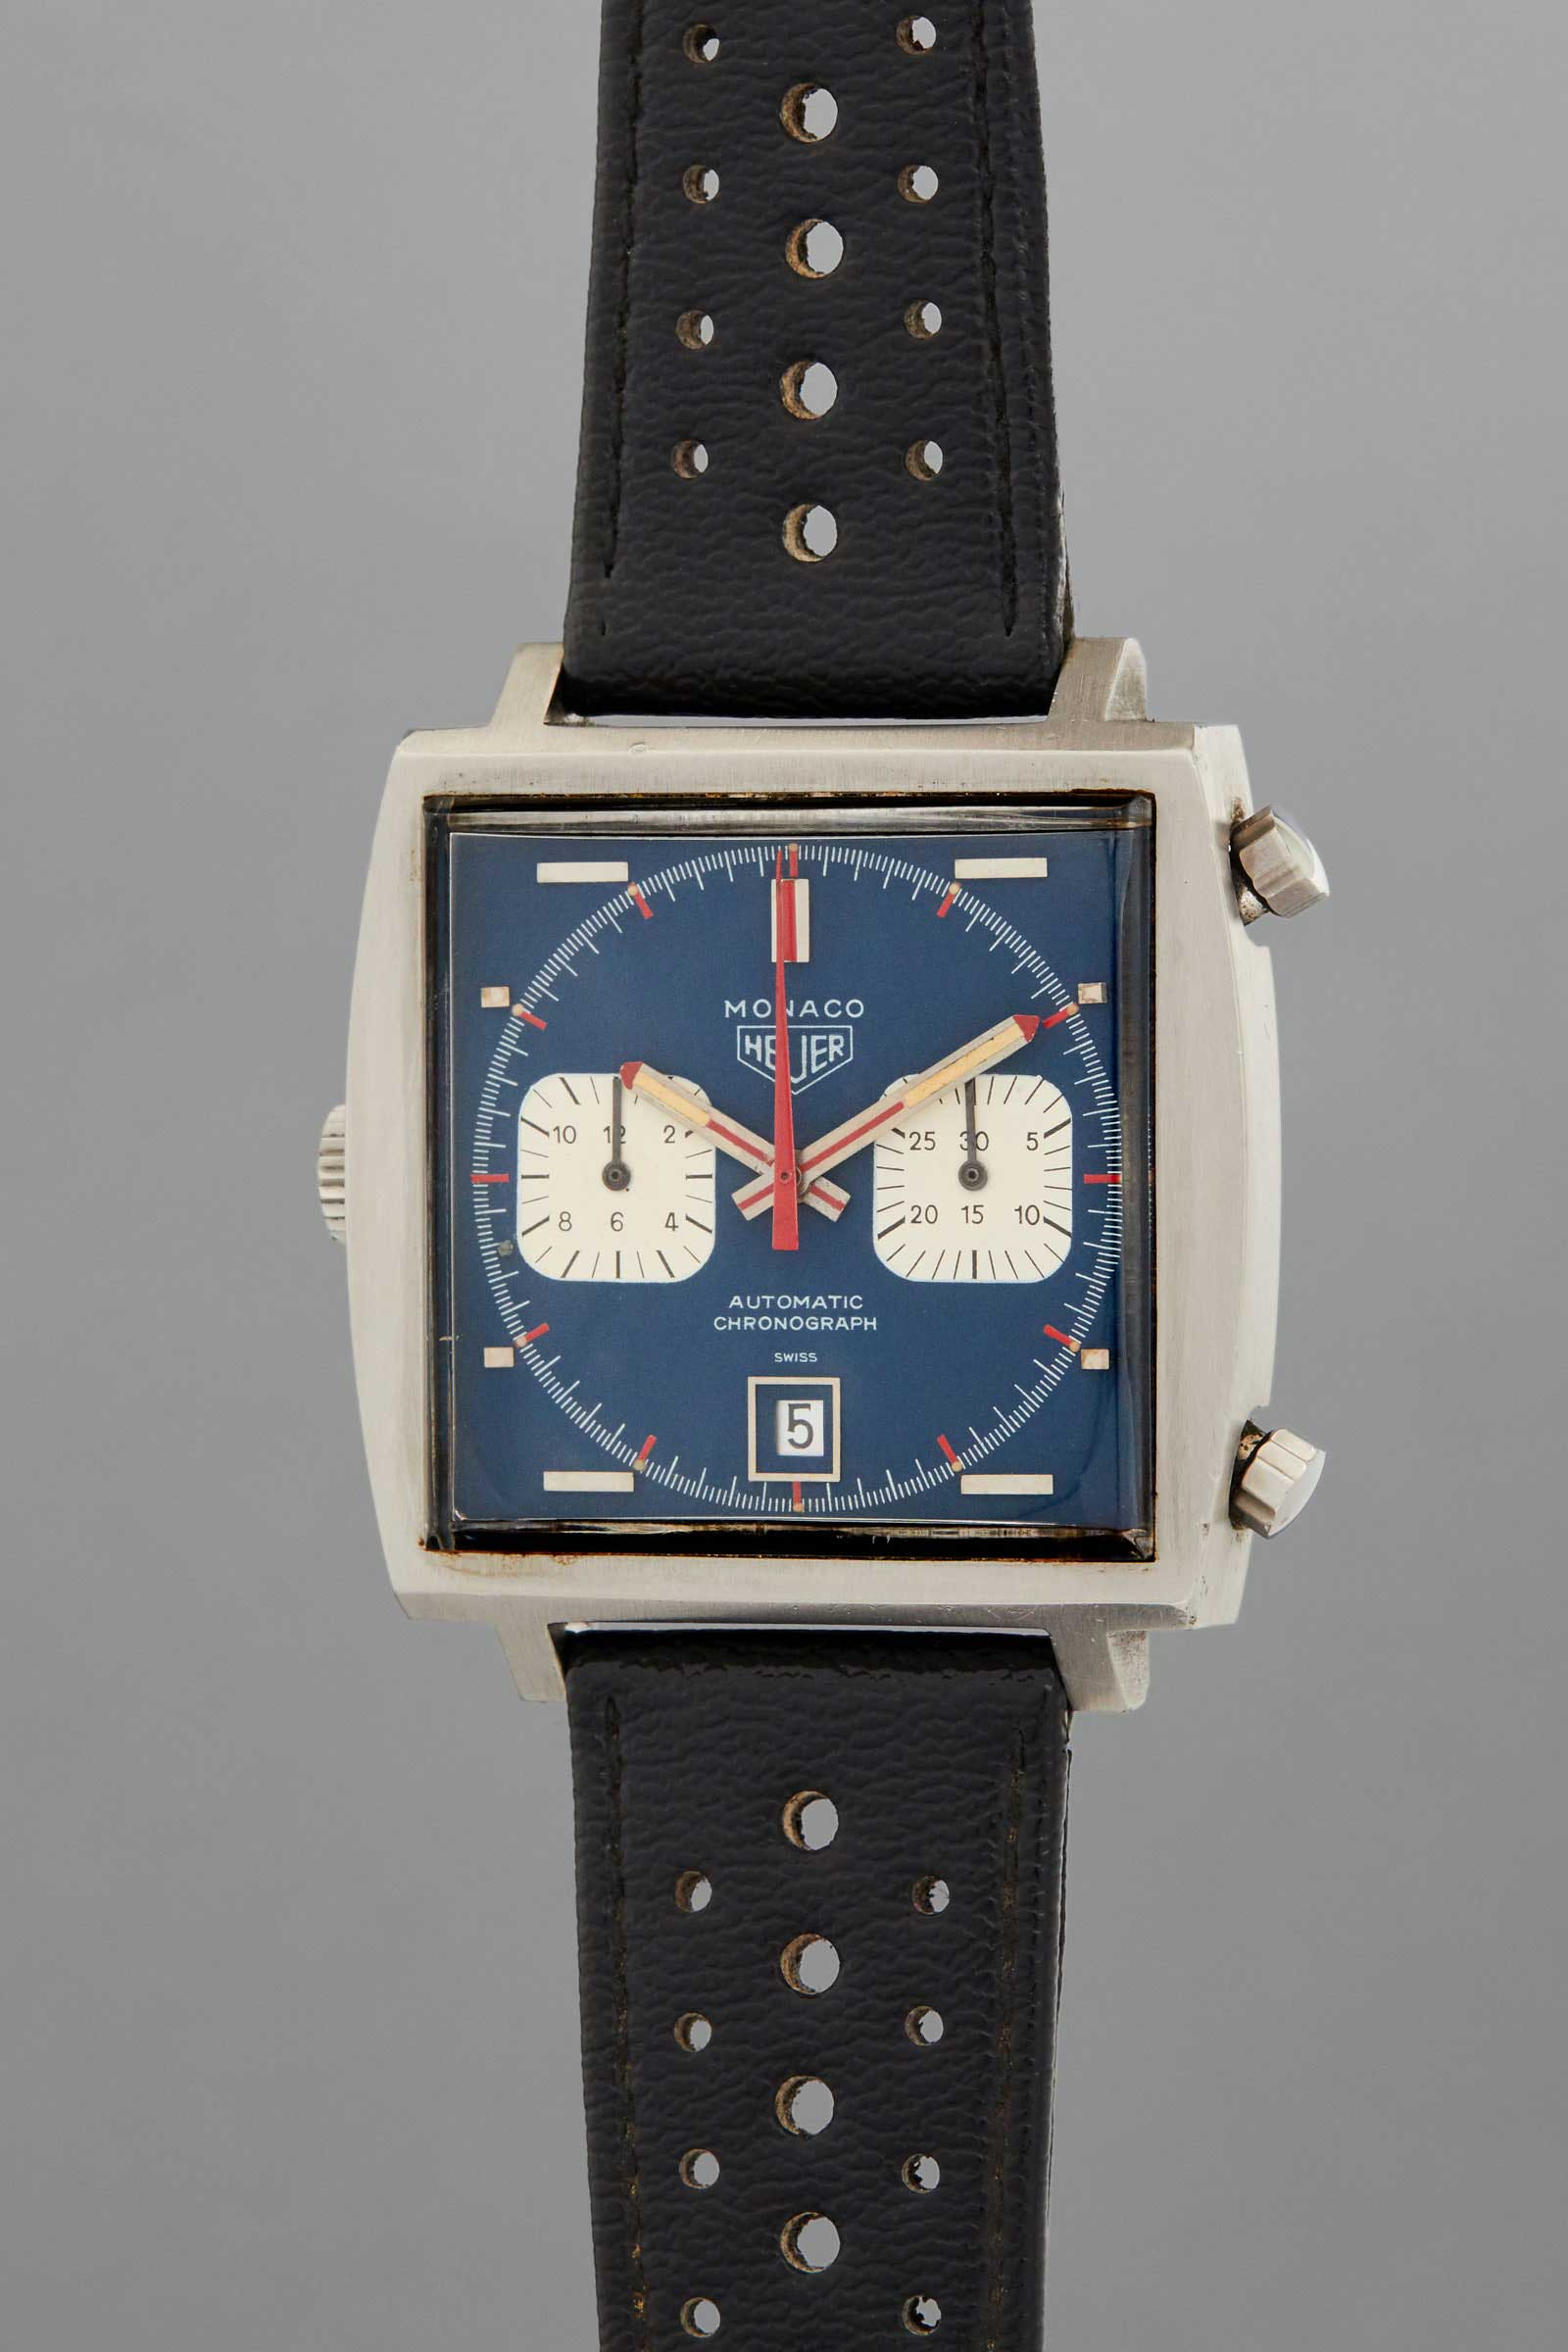 One of six Heuer Monaco watches used during the filming of Steve McQueen's 1970 film, Le mans to be auctioned by Phillips at 2020 New York sale, on 12 December (Image: phillipswatches)